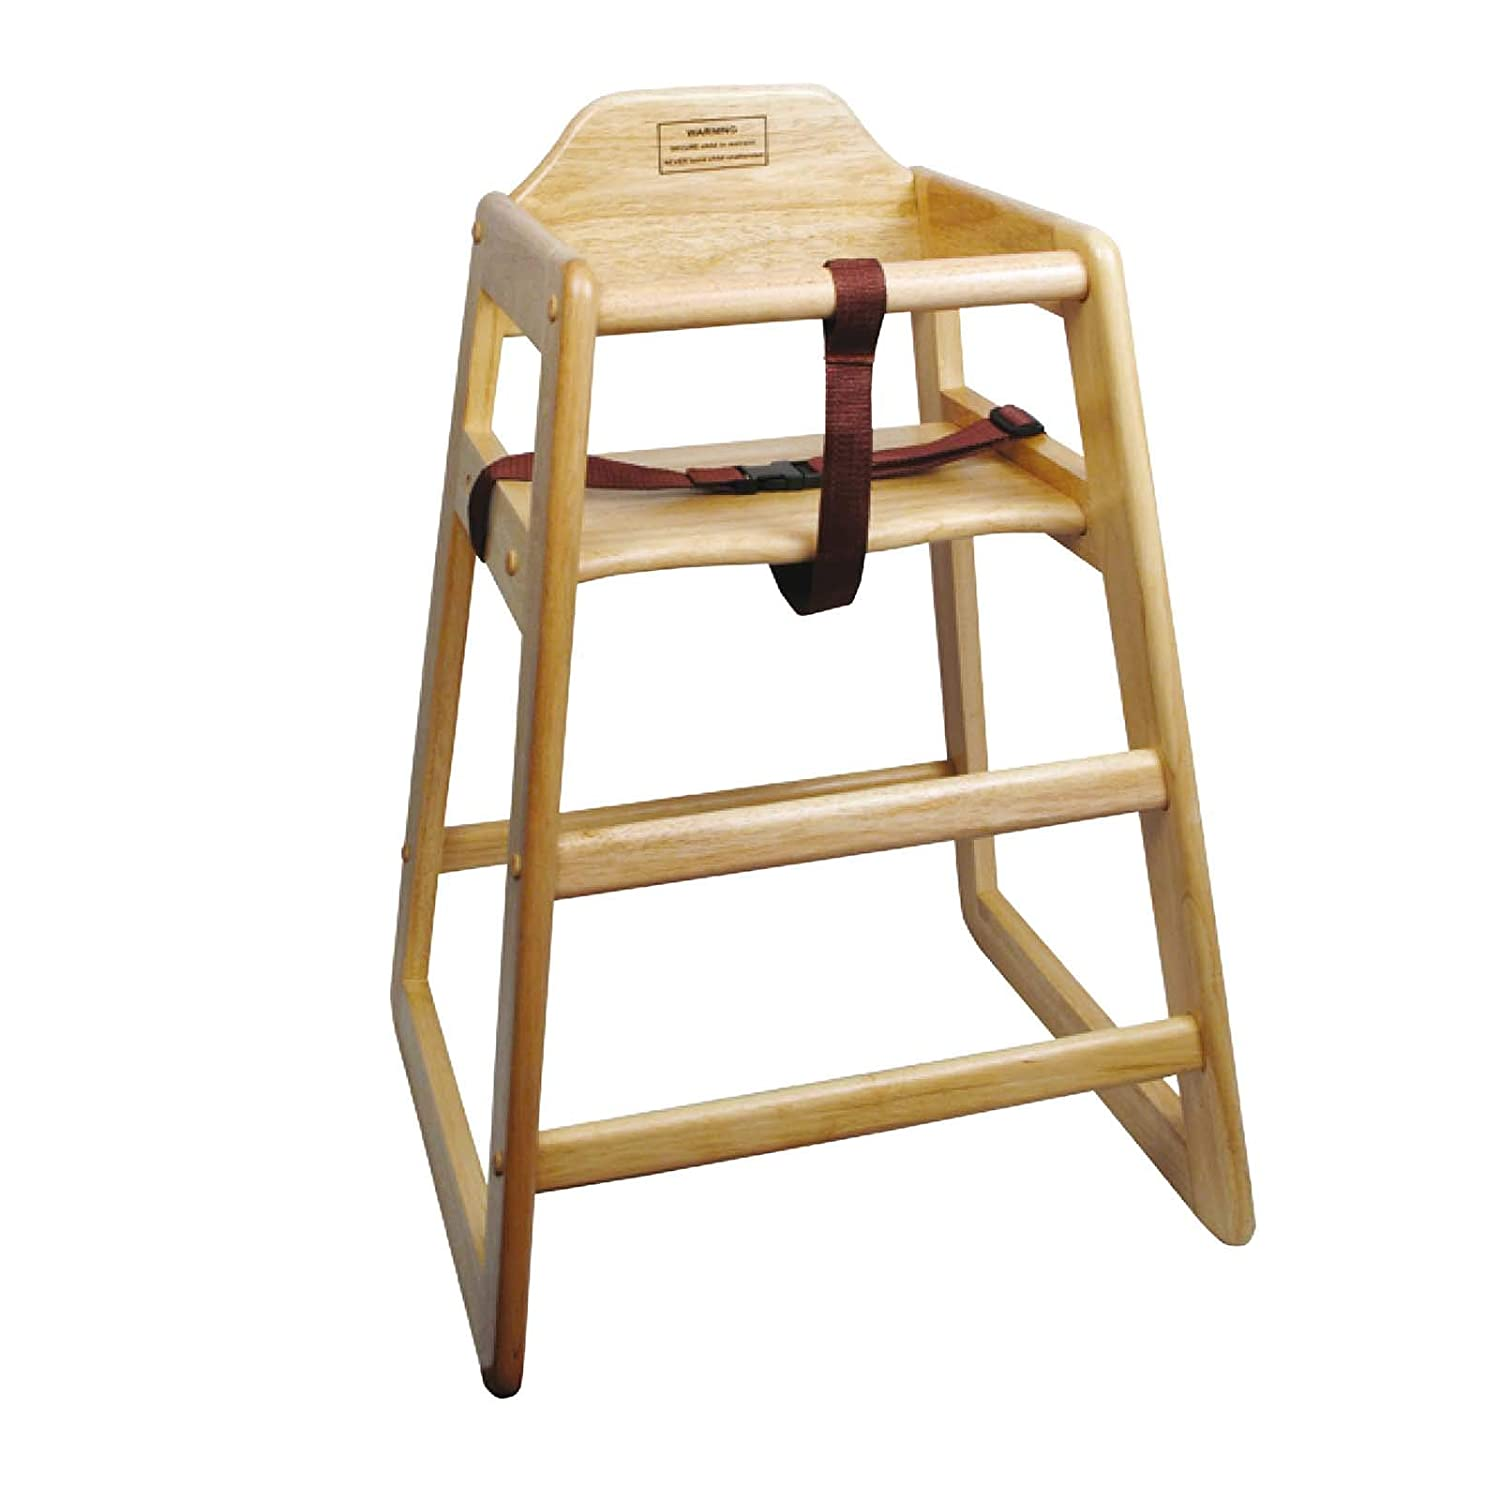 Winco CHH-101 Unassembled Wooden High Chair, Natural Winco USA